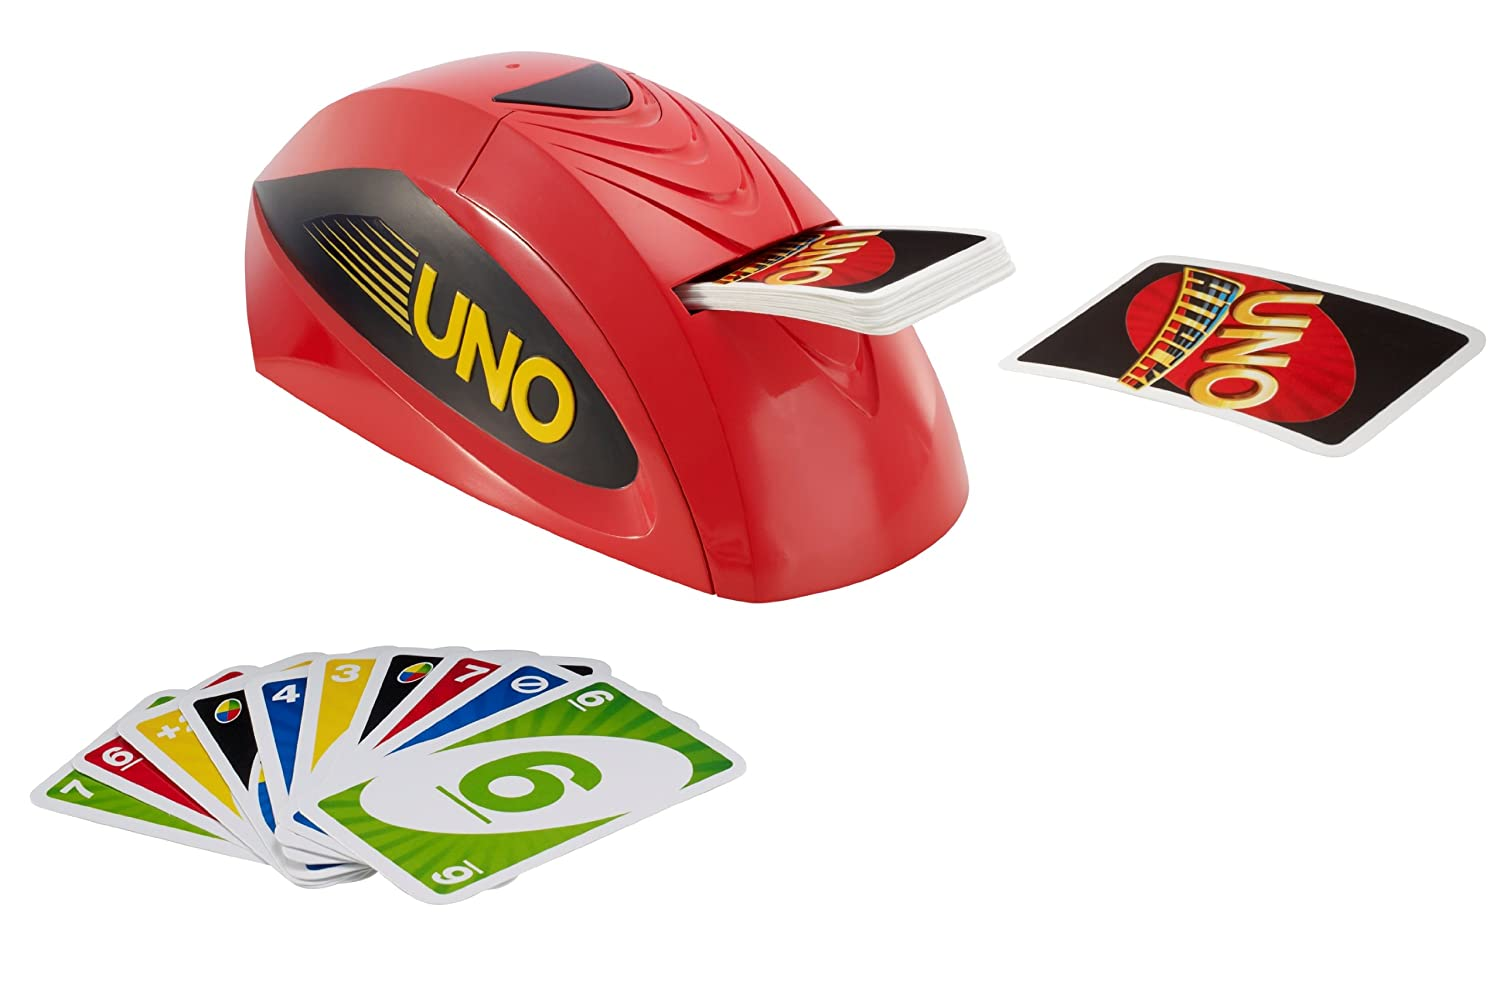 Mattel Games Uno Attack Game